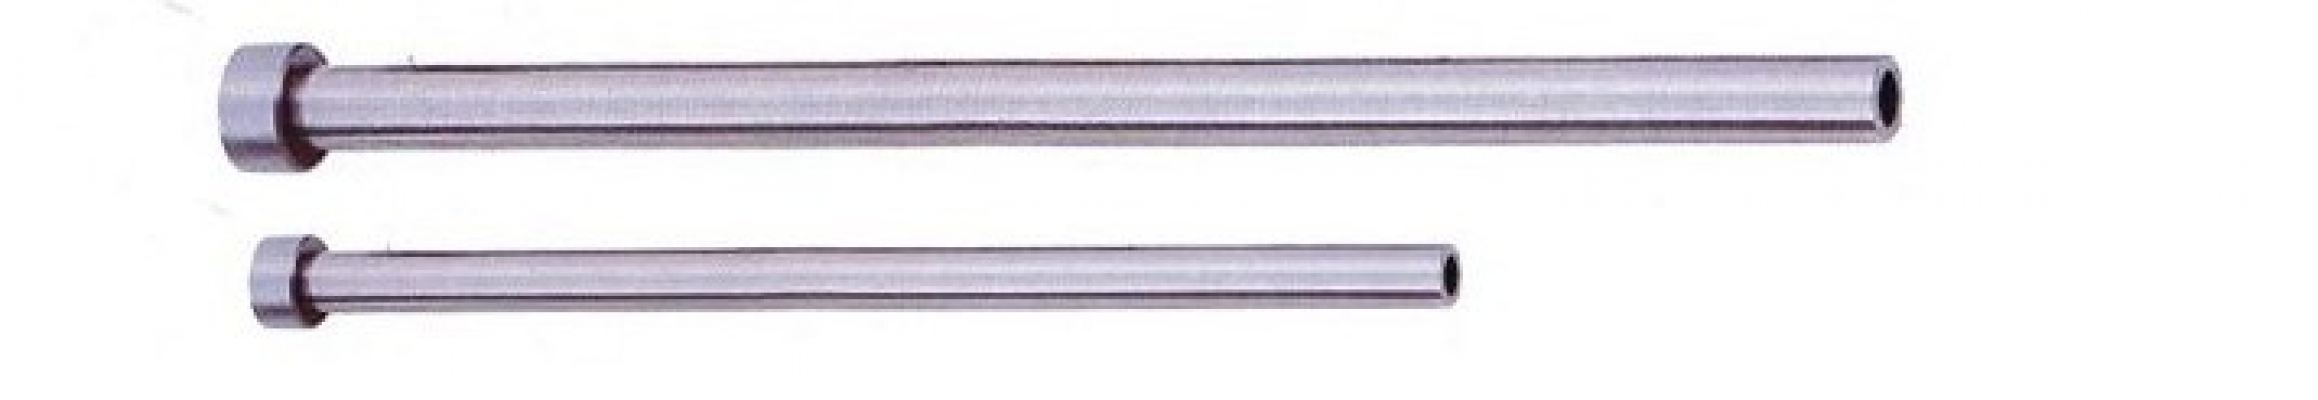 Ejector Sleeve